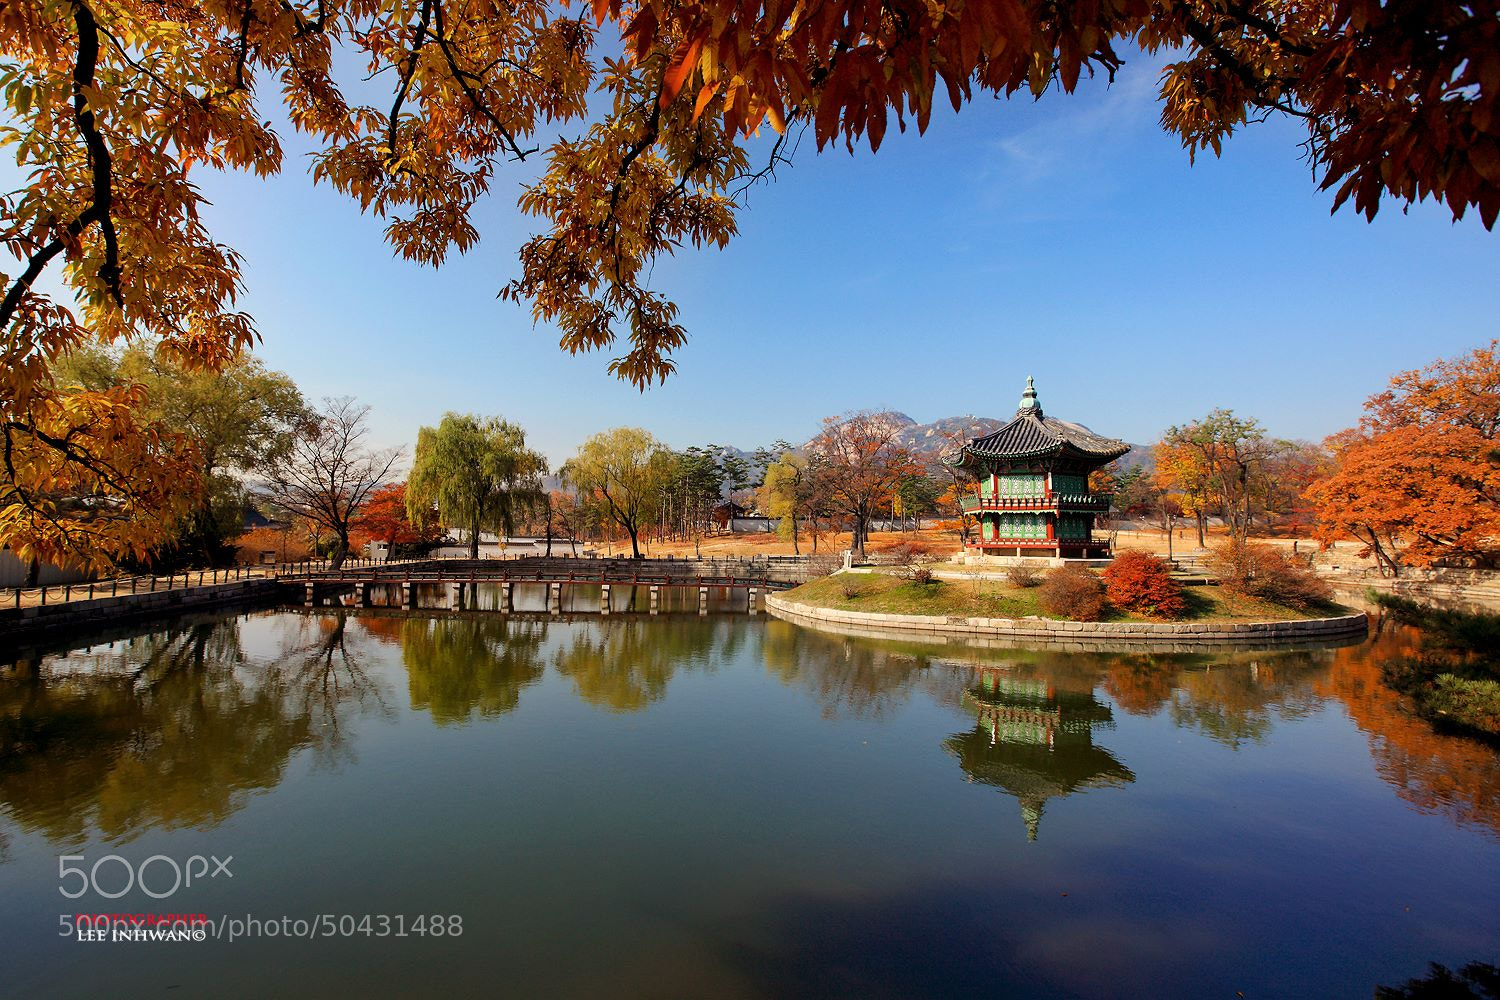 Photograph Fall of king's pond by LEE INHWAN on 500px